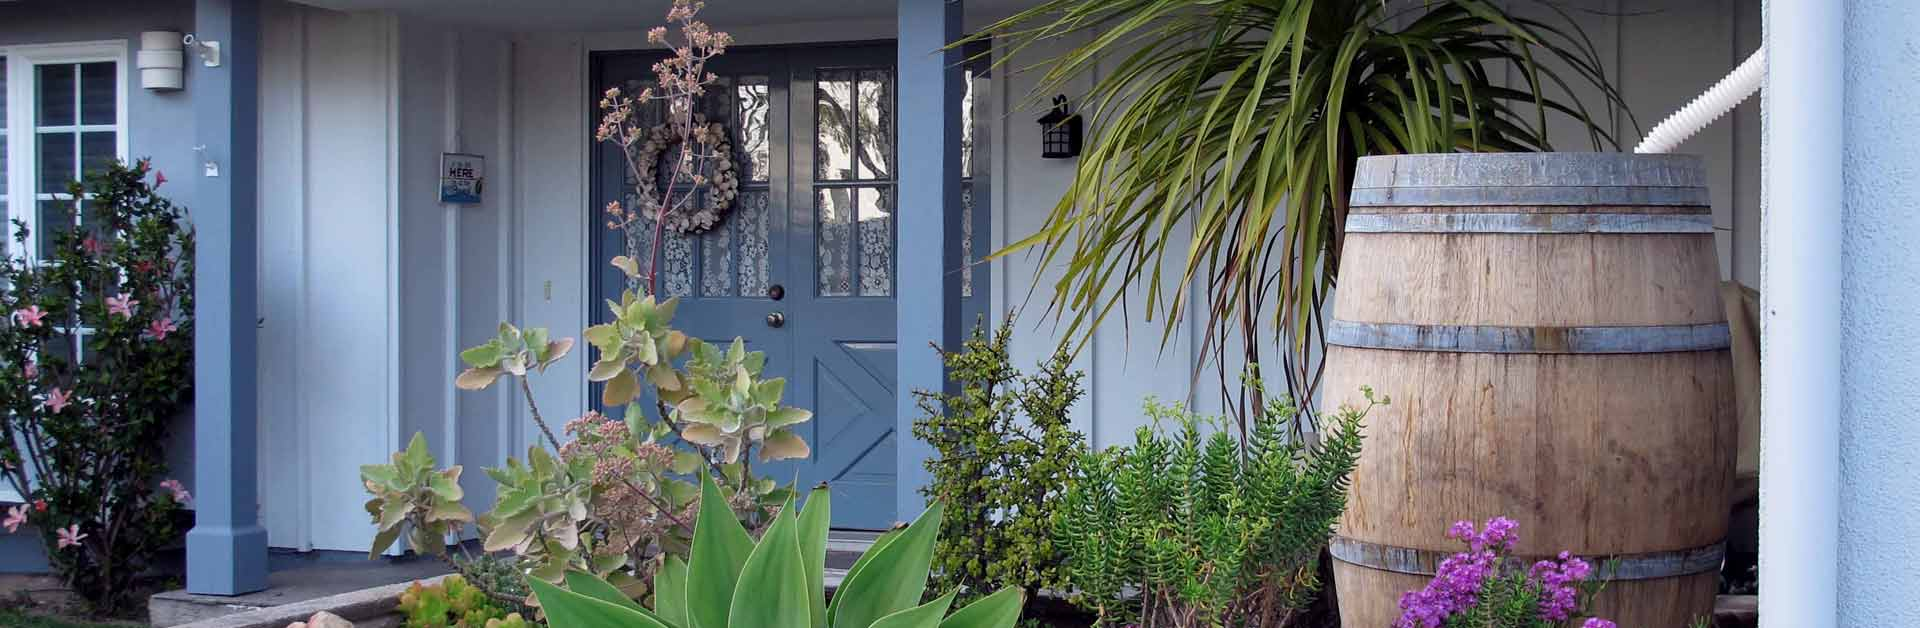 A front yard of a nice home with a rain barrel used for water conservation.